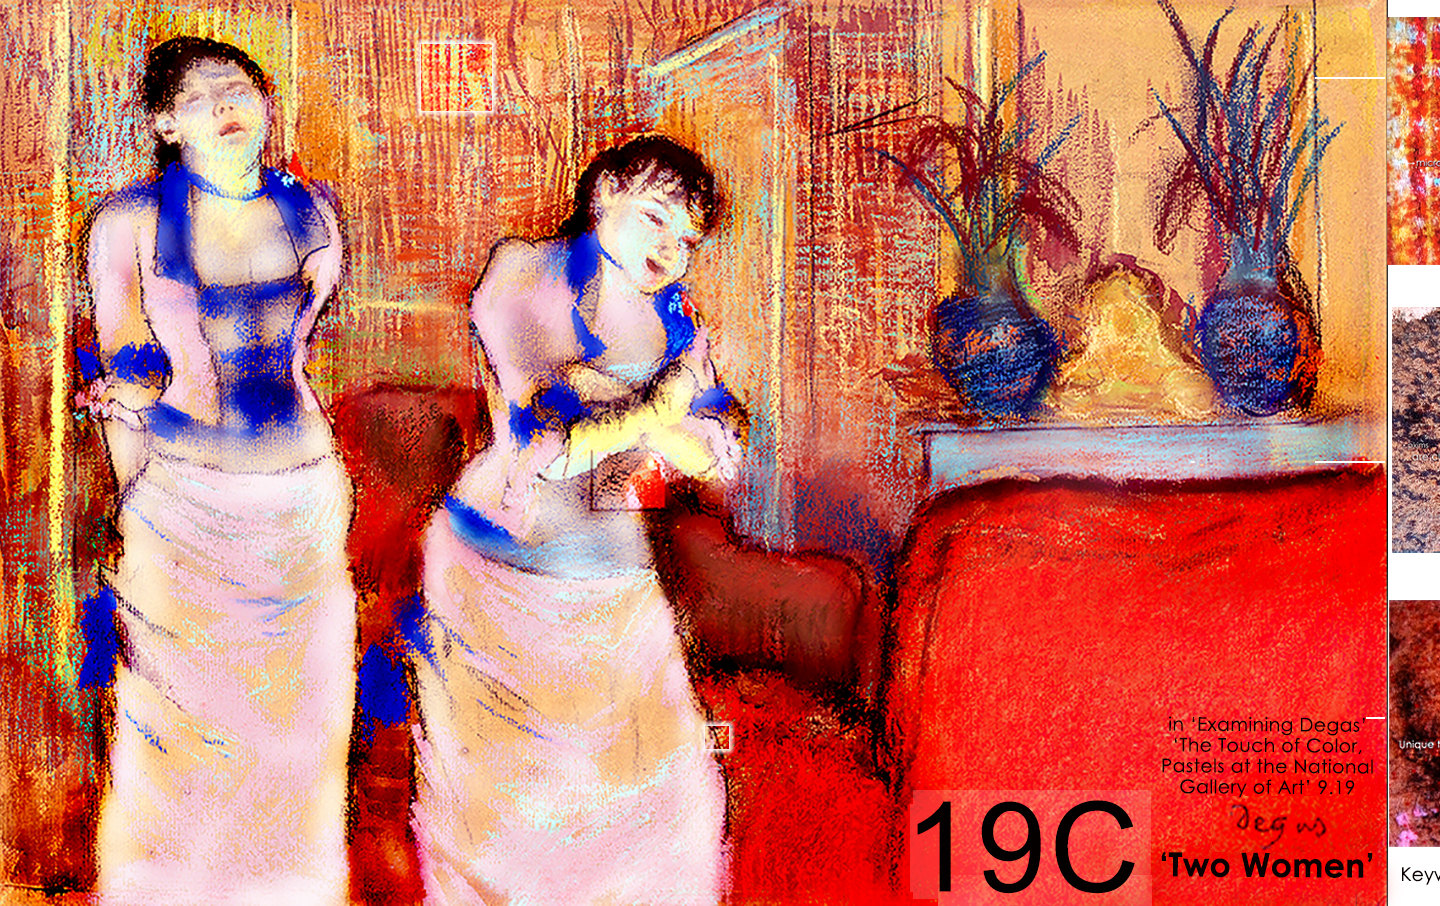 MVR Pxim Degas 2021 Two Women.jpg